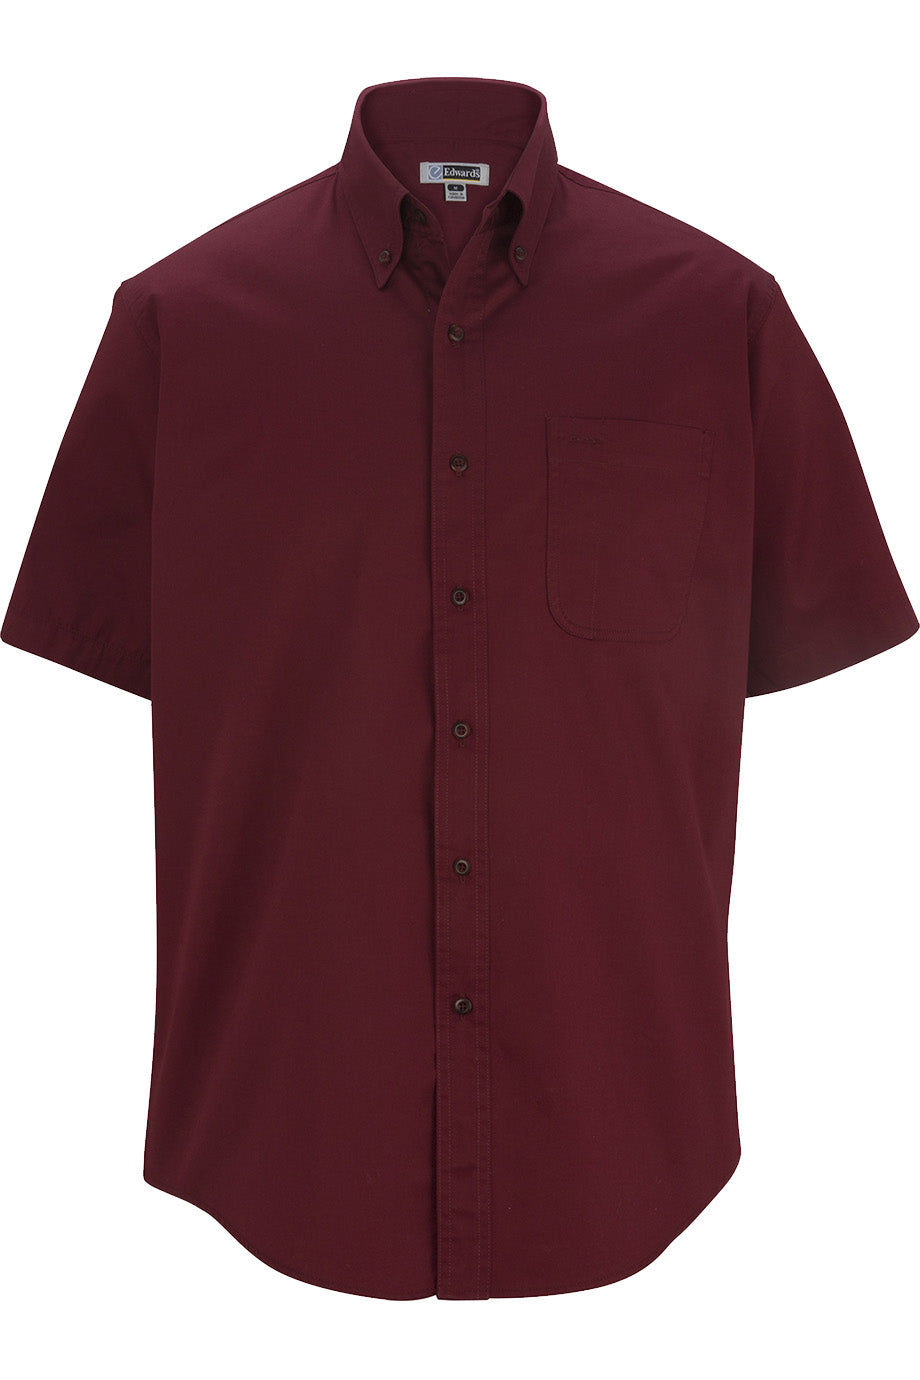 Burgundy Edwards Mens Cottonplus Short Sleeve Twill Shirt